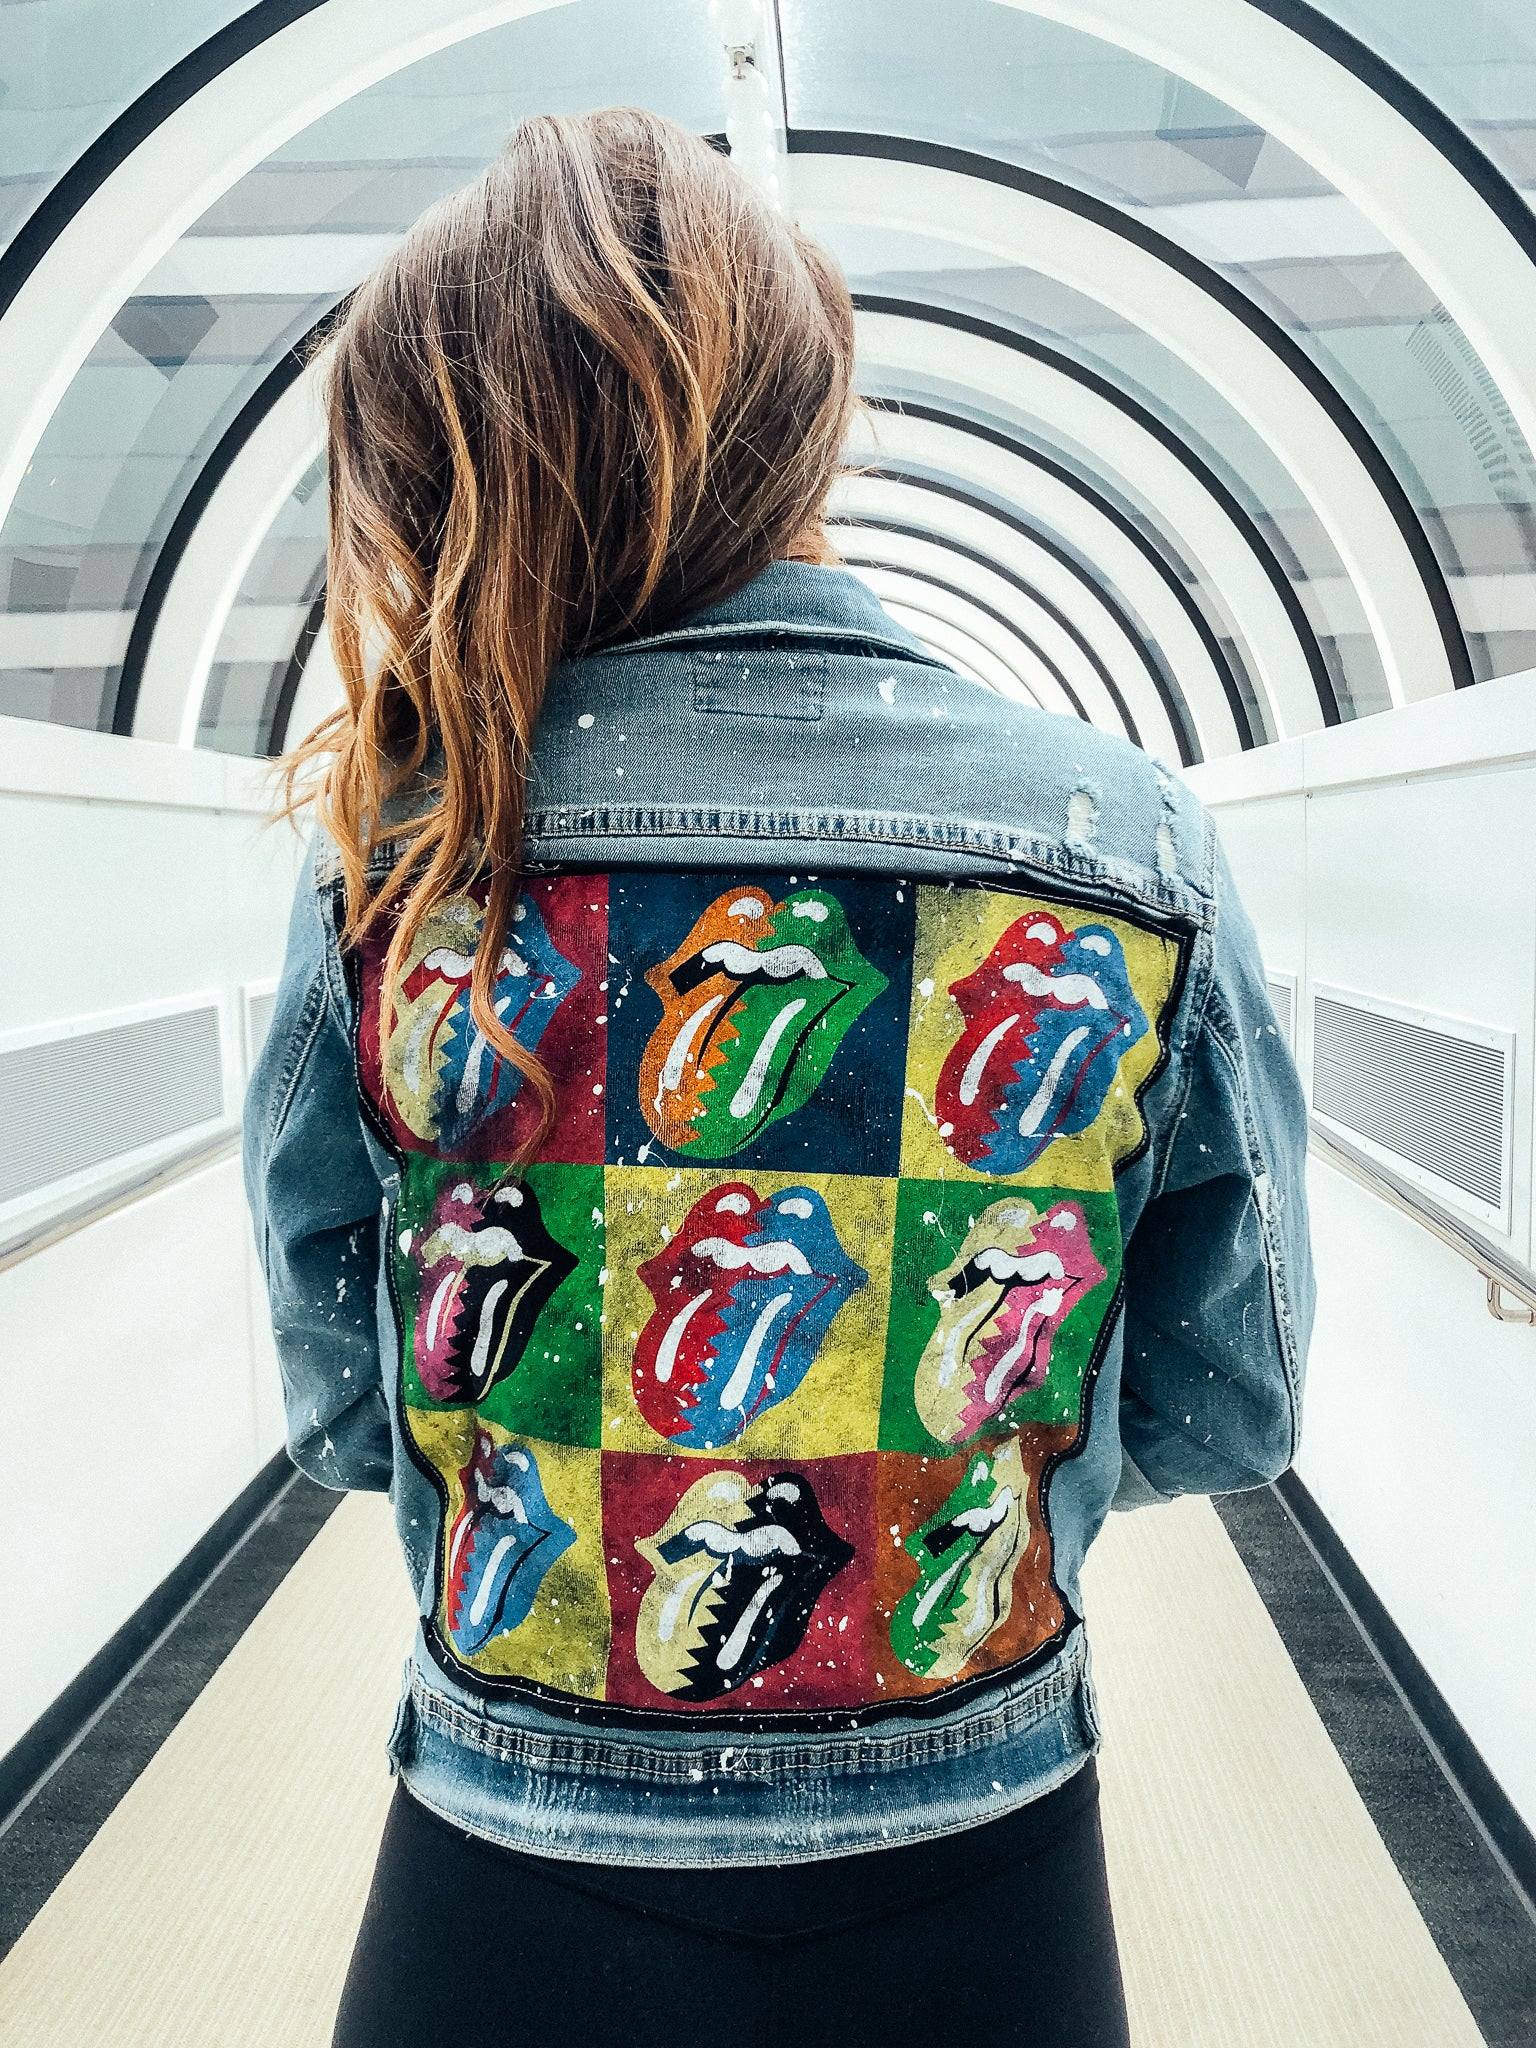 COLORFUL ROLLING STONES DENIM PATCHWORK JACKET